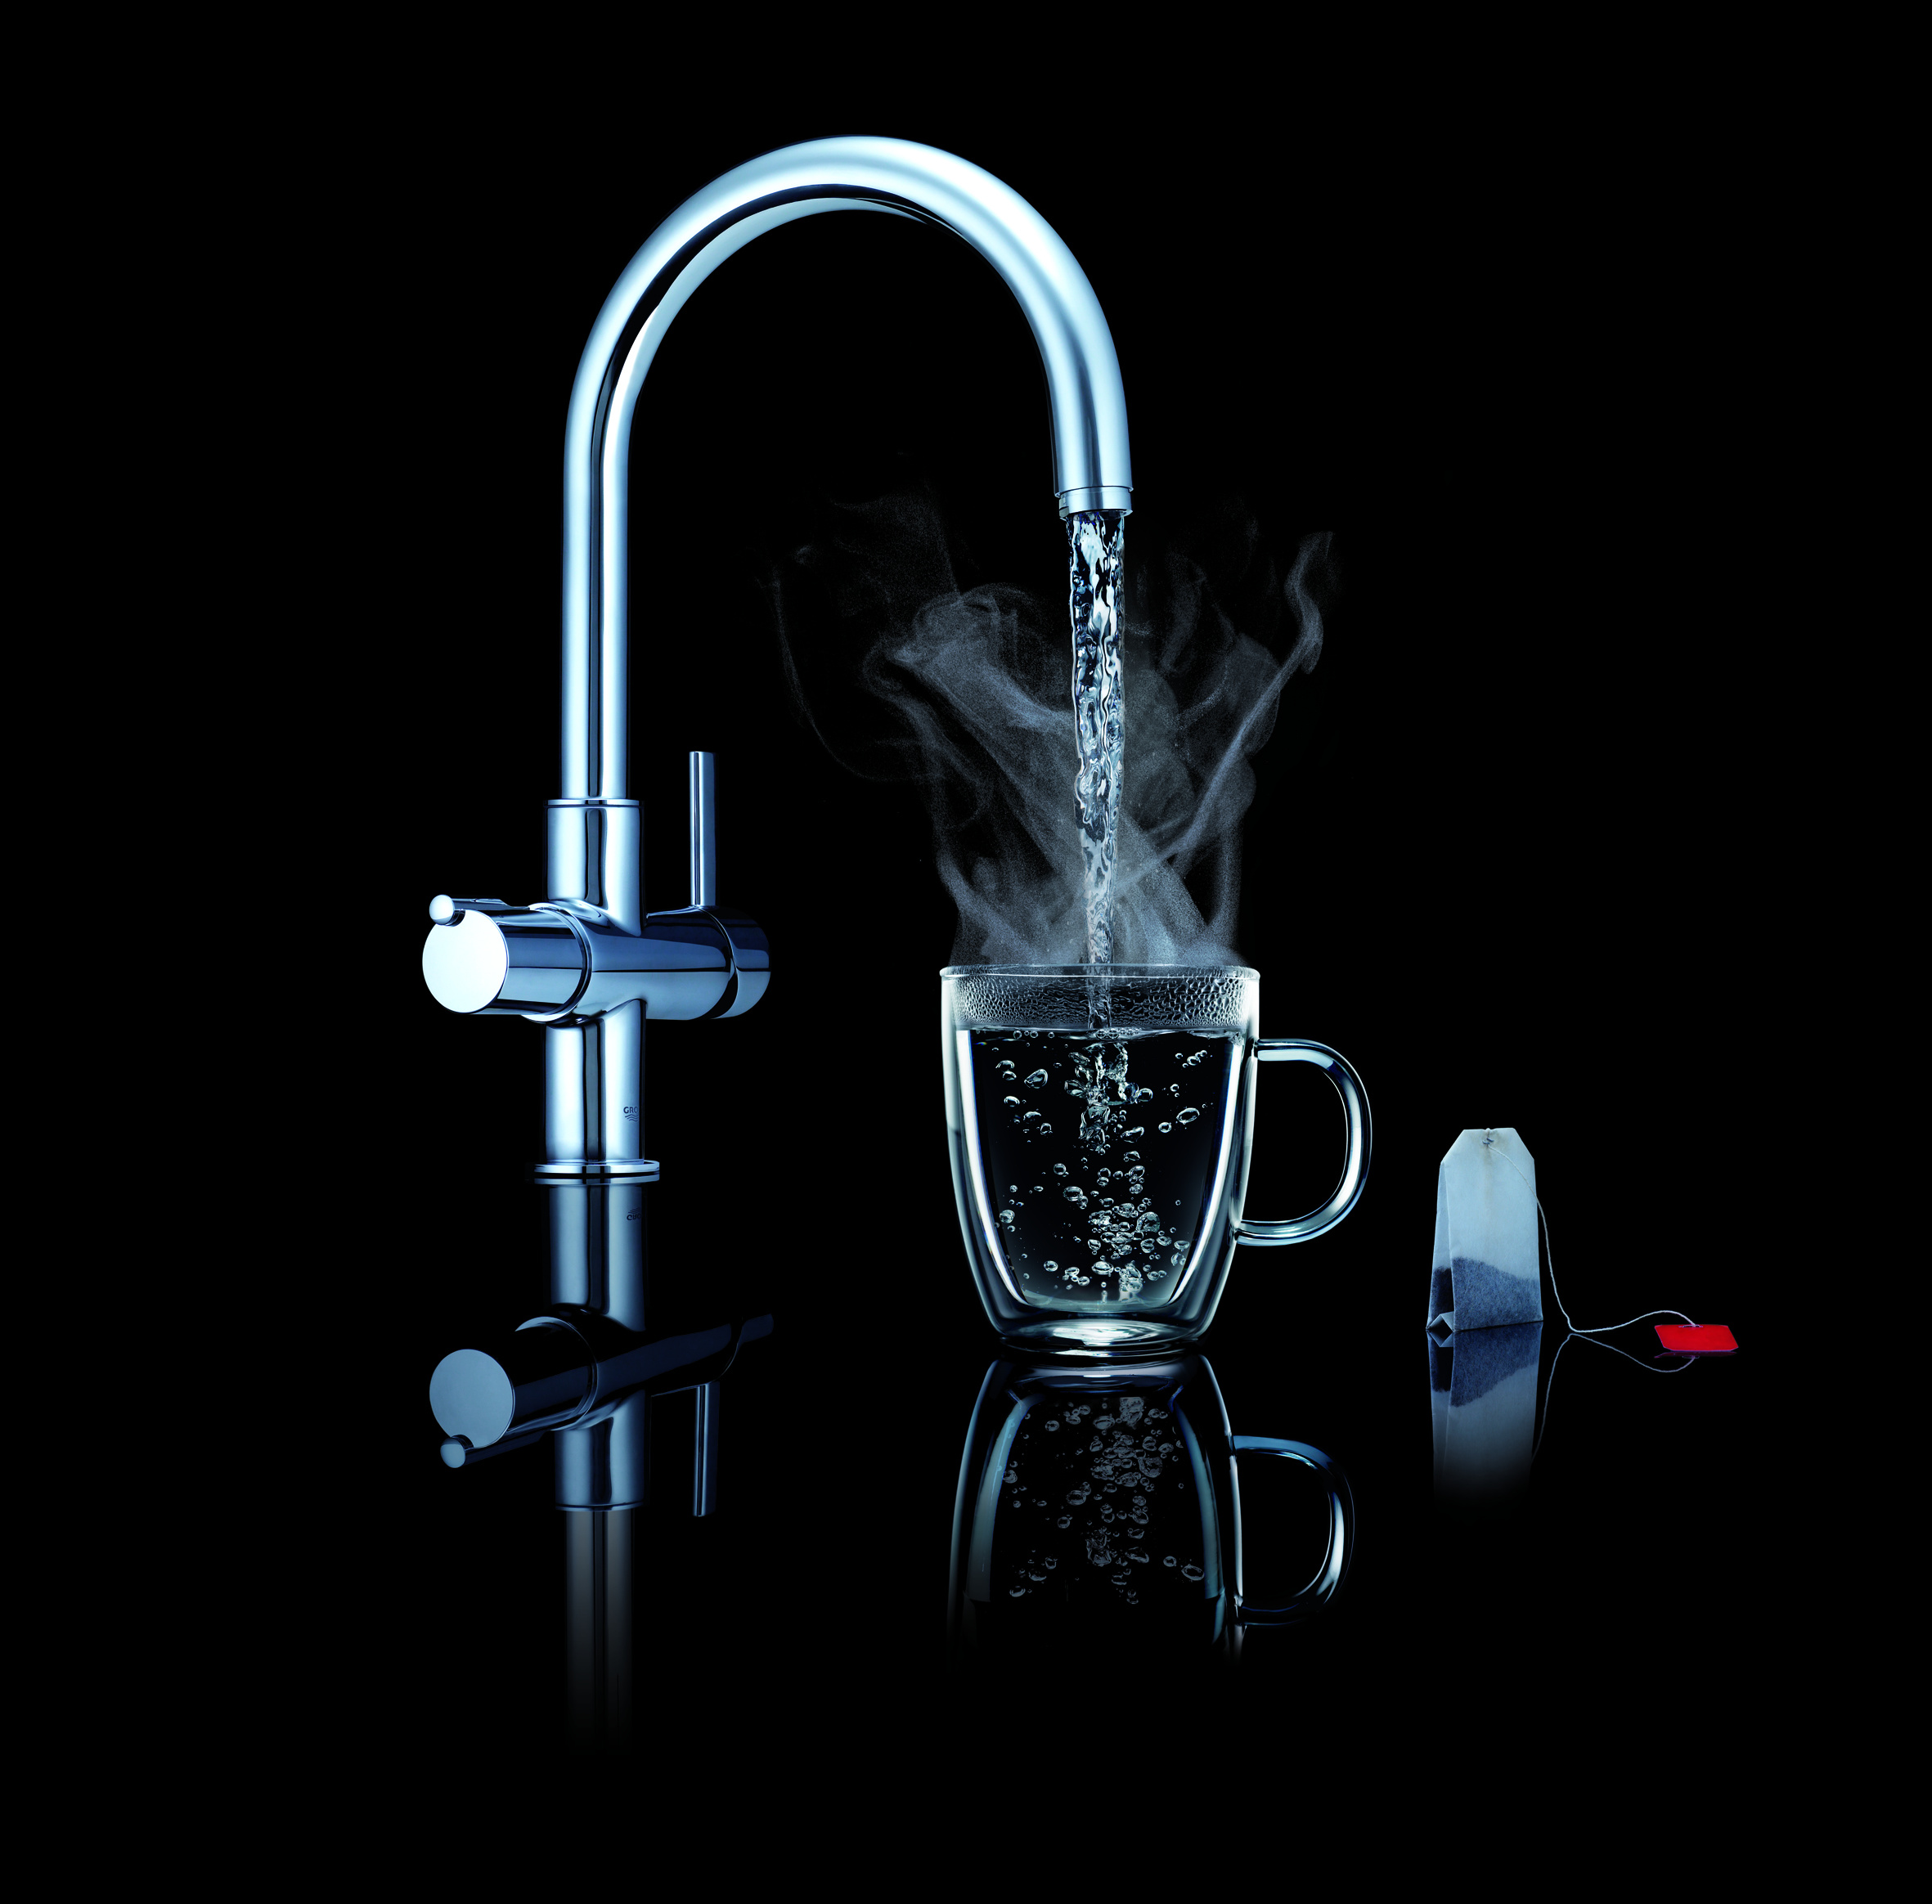 Grohe Red teabag